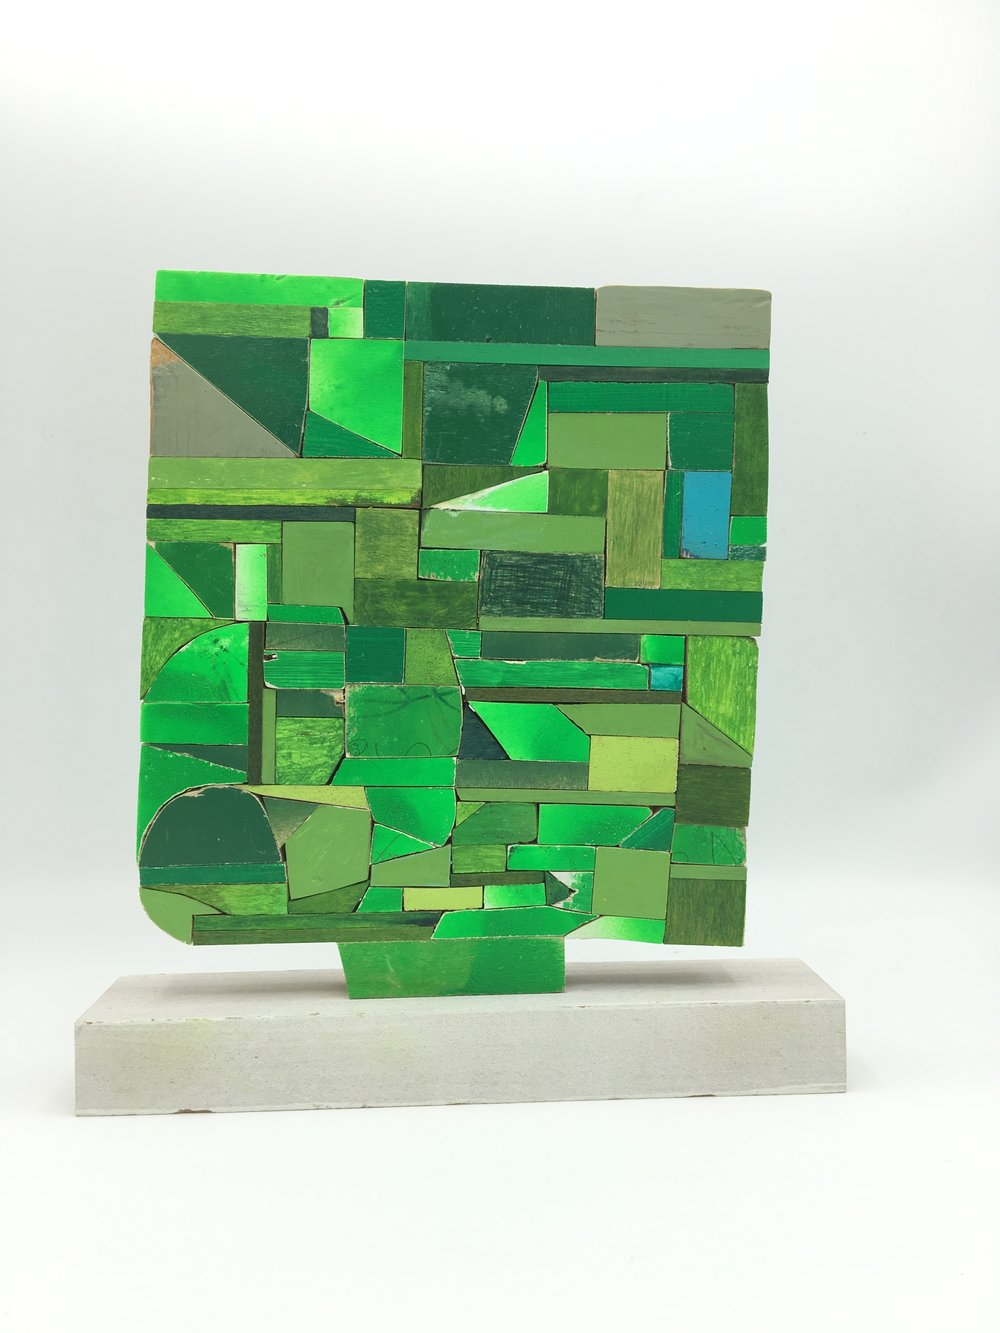 Green One , 2016   [private collection Boston, MA]  Wood, Paint, Colored Pencil, Glue   10 x 9 x 2 in. SOLD